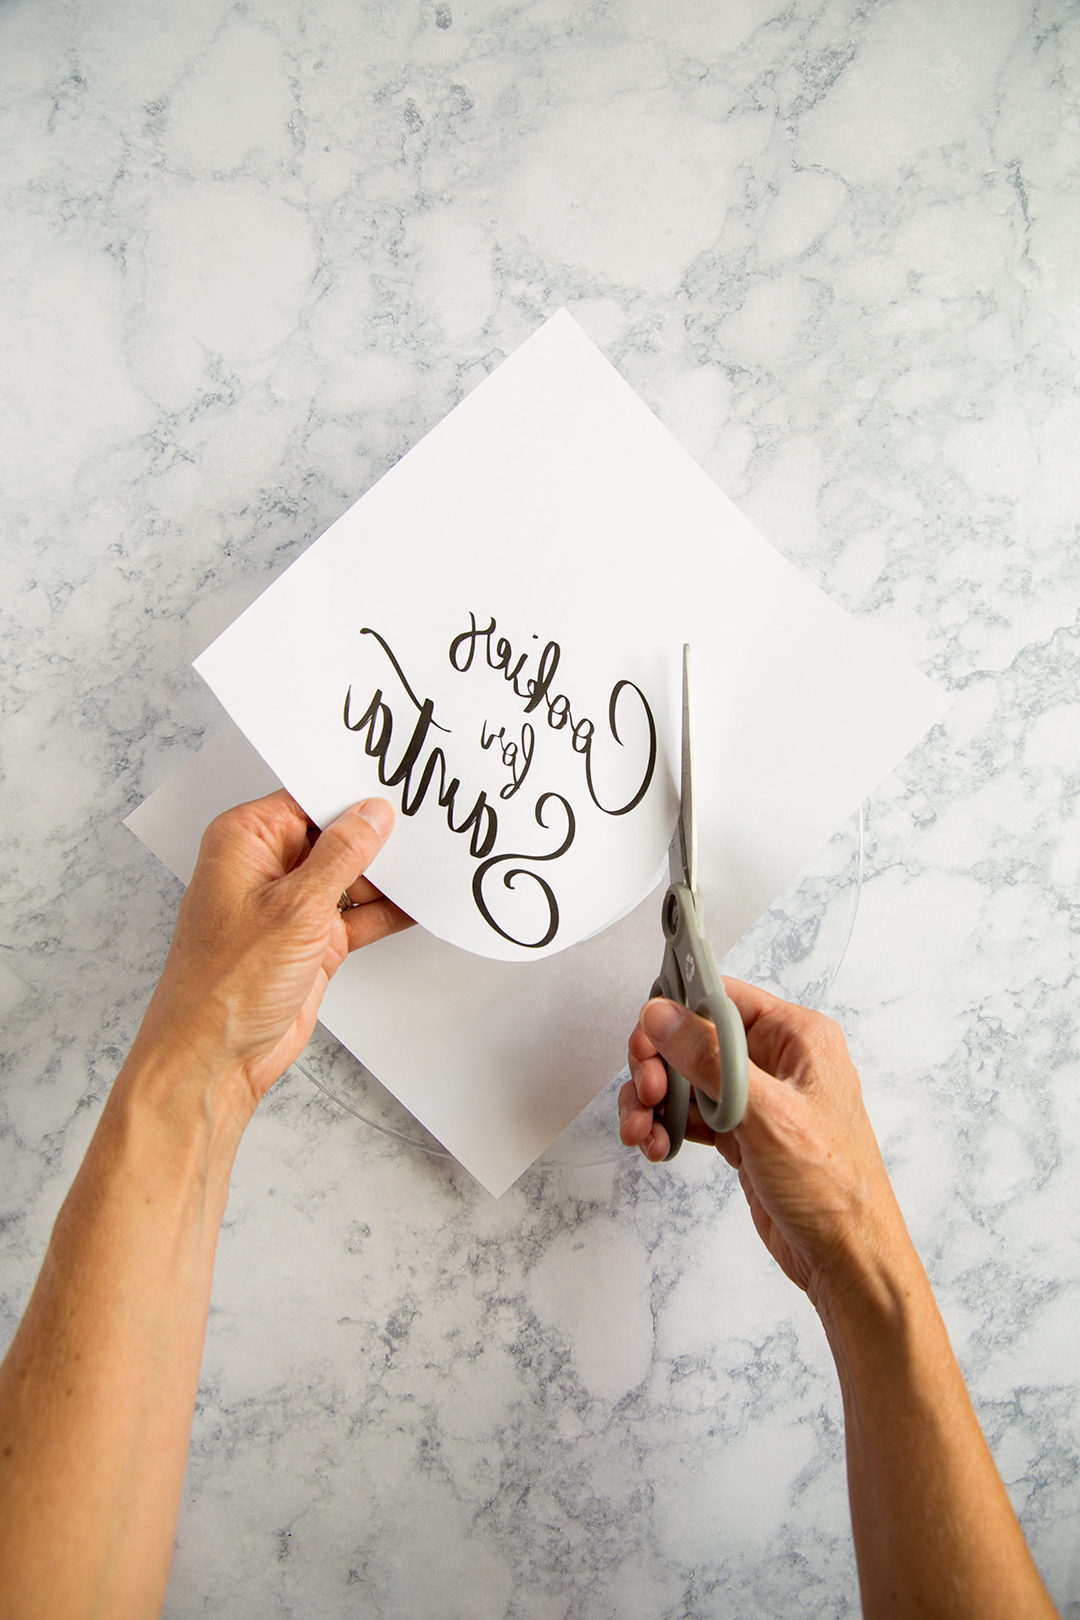 scissors used to cut out text